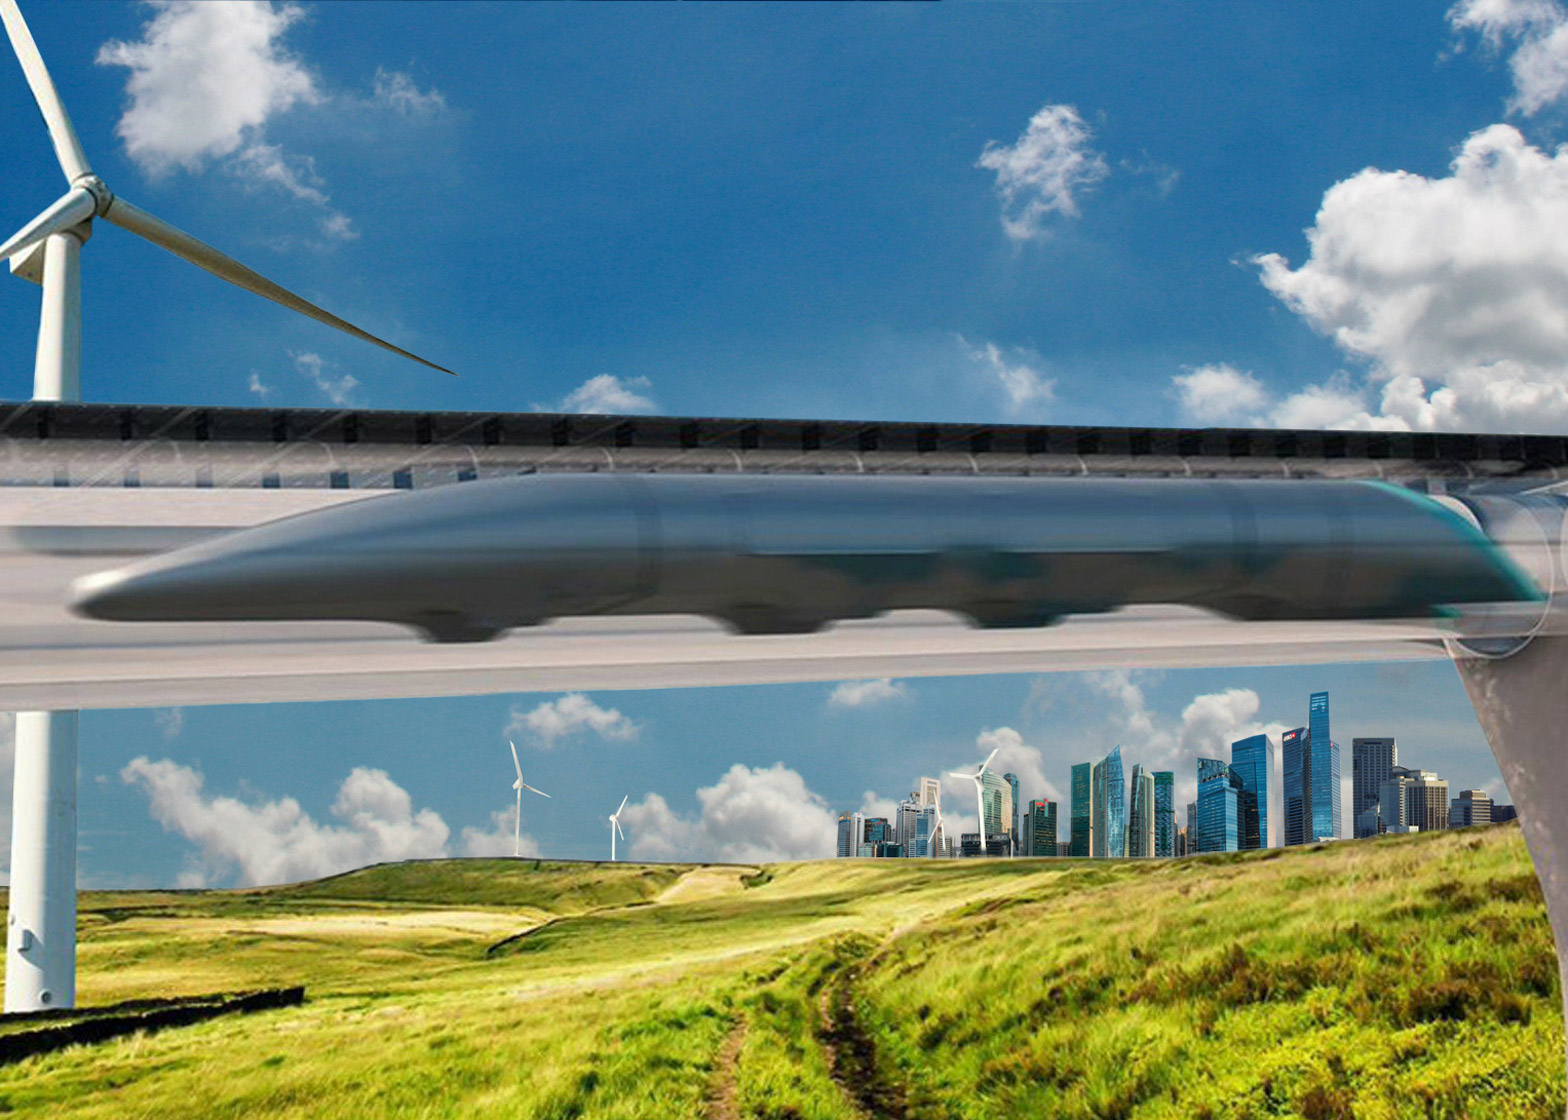 hyper loop An upcoming study will determine the feasibility of a hyperloop system in missouri that would connect st louis, columbia, and kansas city.